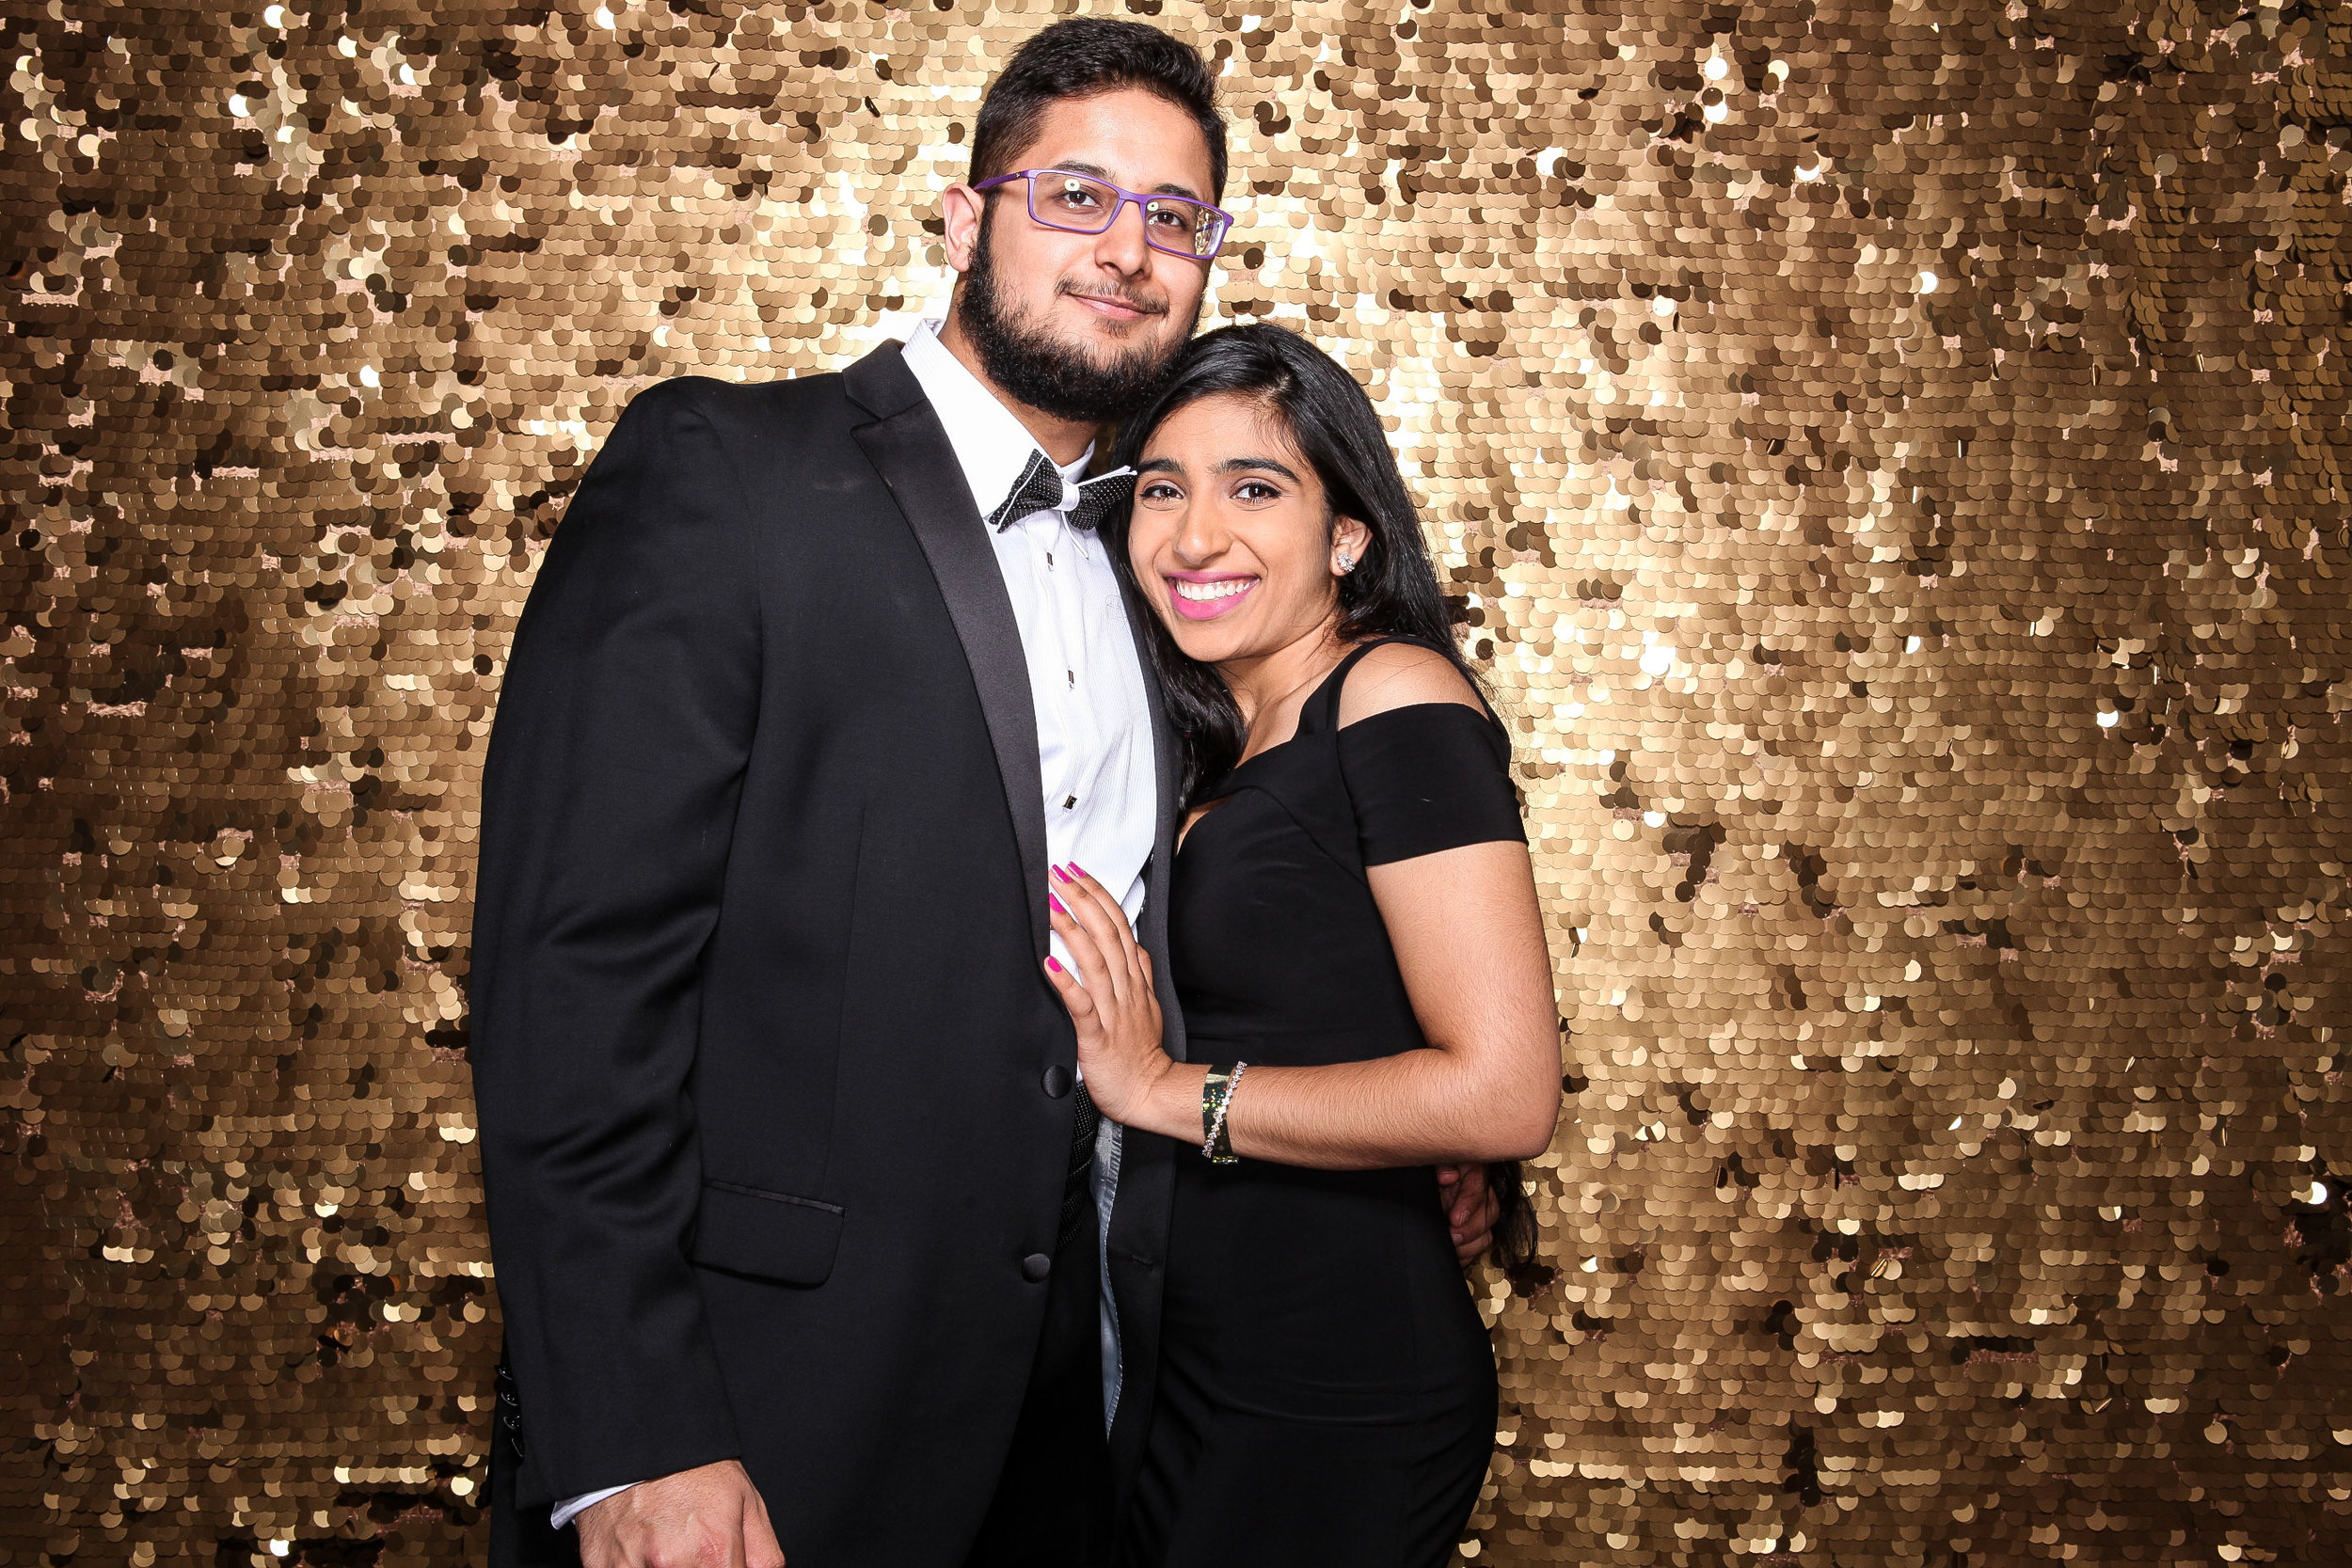 20190503_Adelphi_Senior_Formal-040.jpg